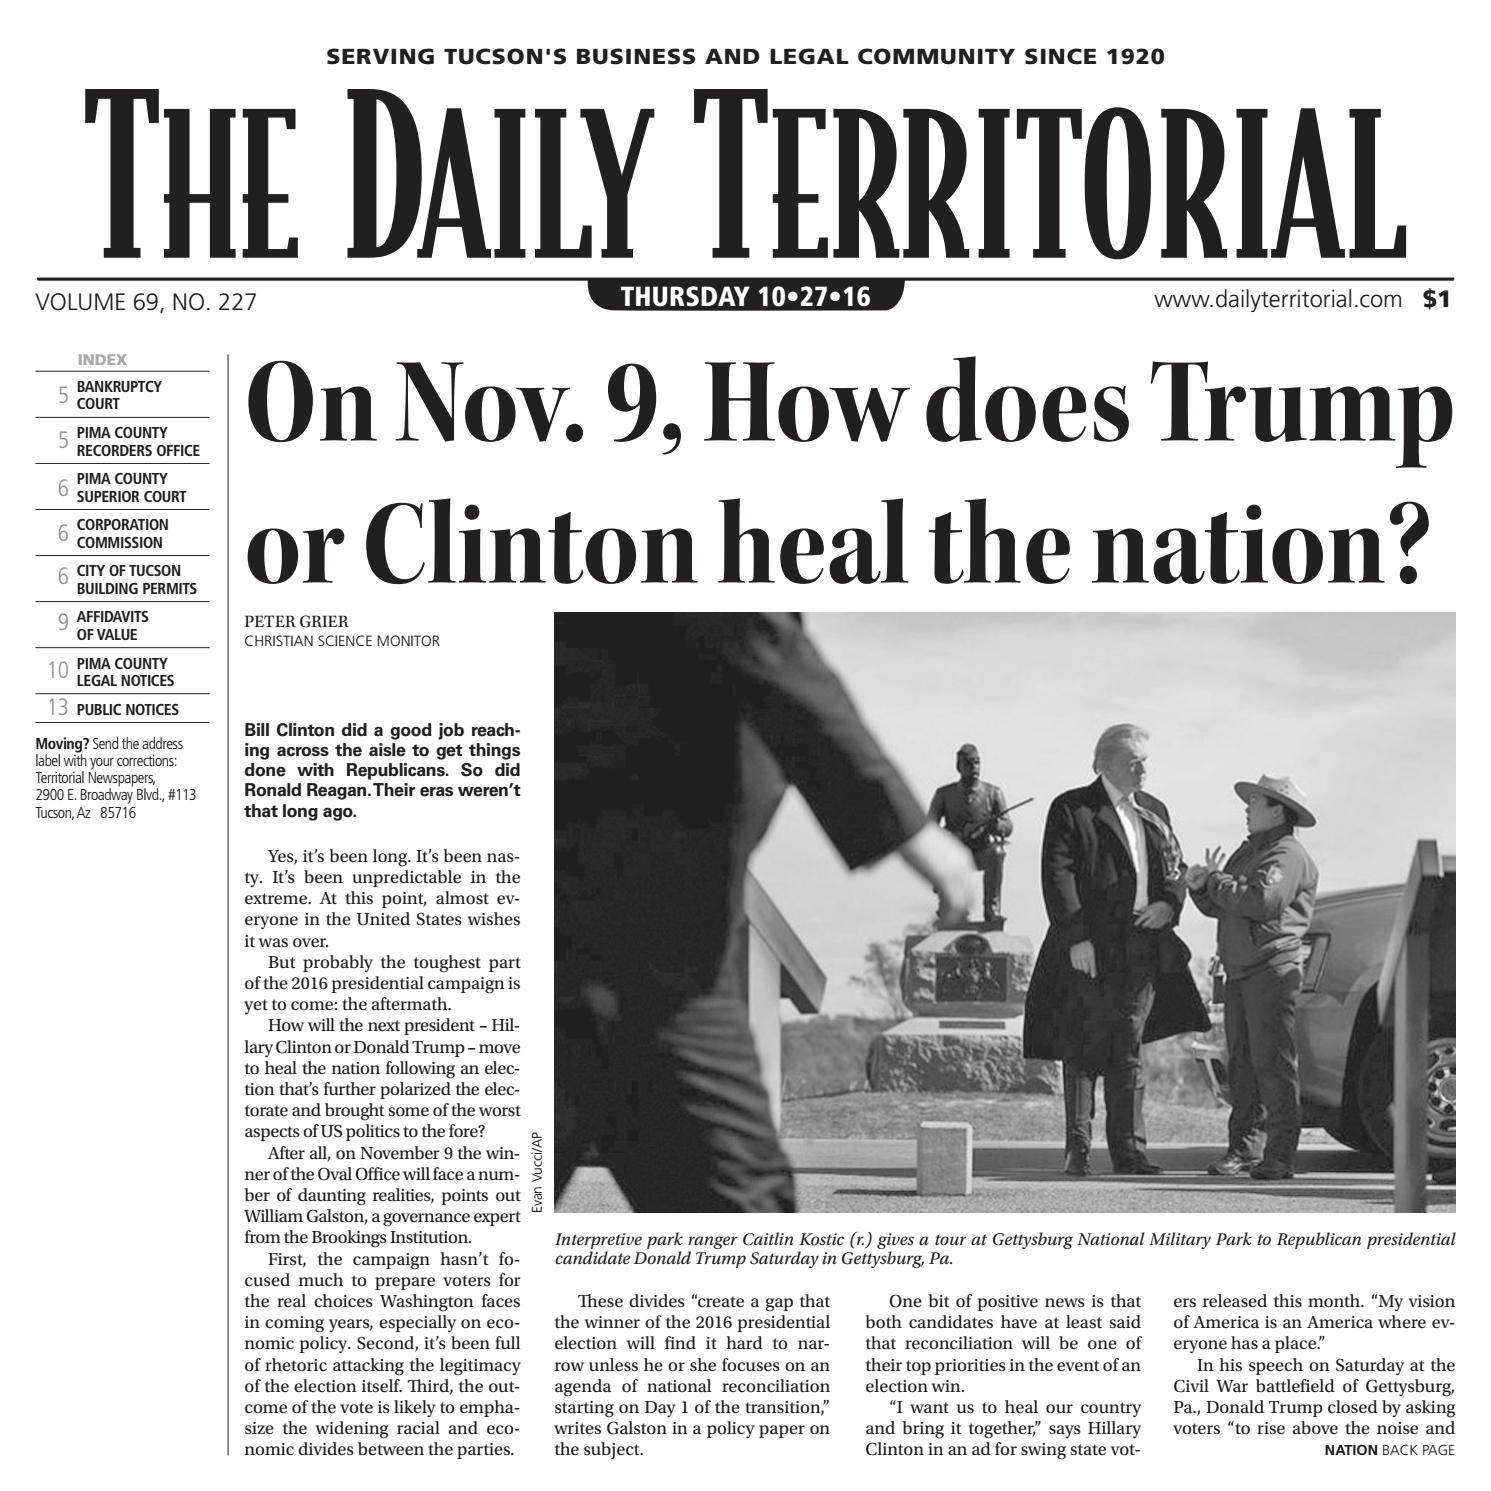 10272016 The Daily Territorial By Wick Communications Issuu